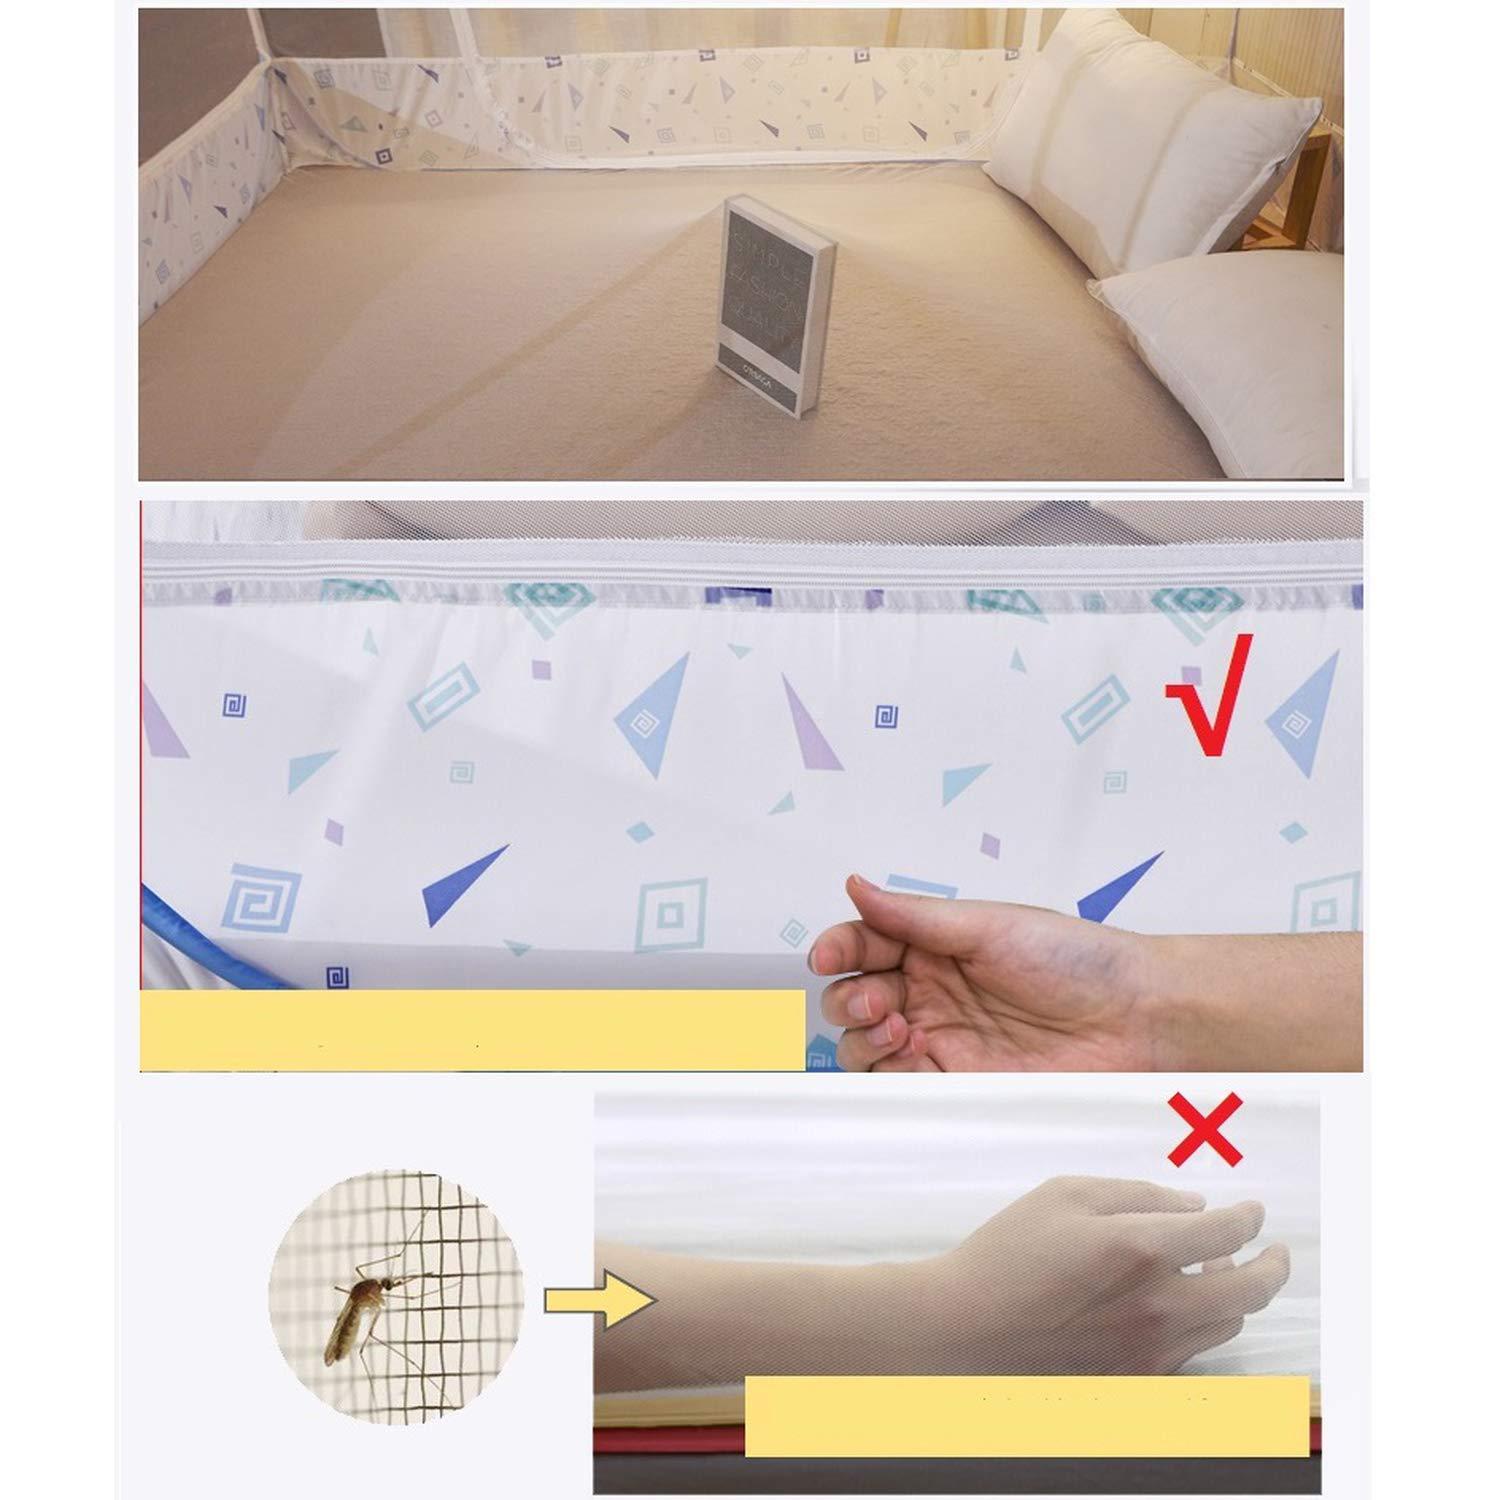 Romantic Elegant Mosquito Net for Home Decor 1.5 1.8m Double Bed Net Princess Bed Mosquito Net Tent Mesh Netting,Green Full-Bottom,1.8m (6 feet) Bed by SuWuan mosquito net (Image #2)